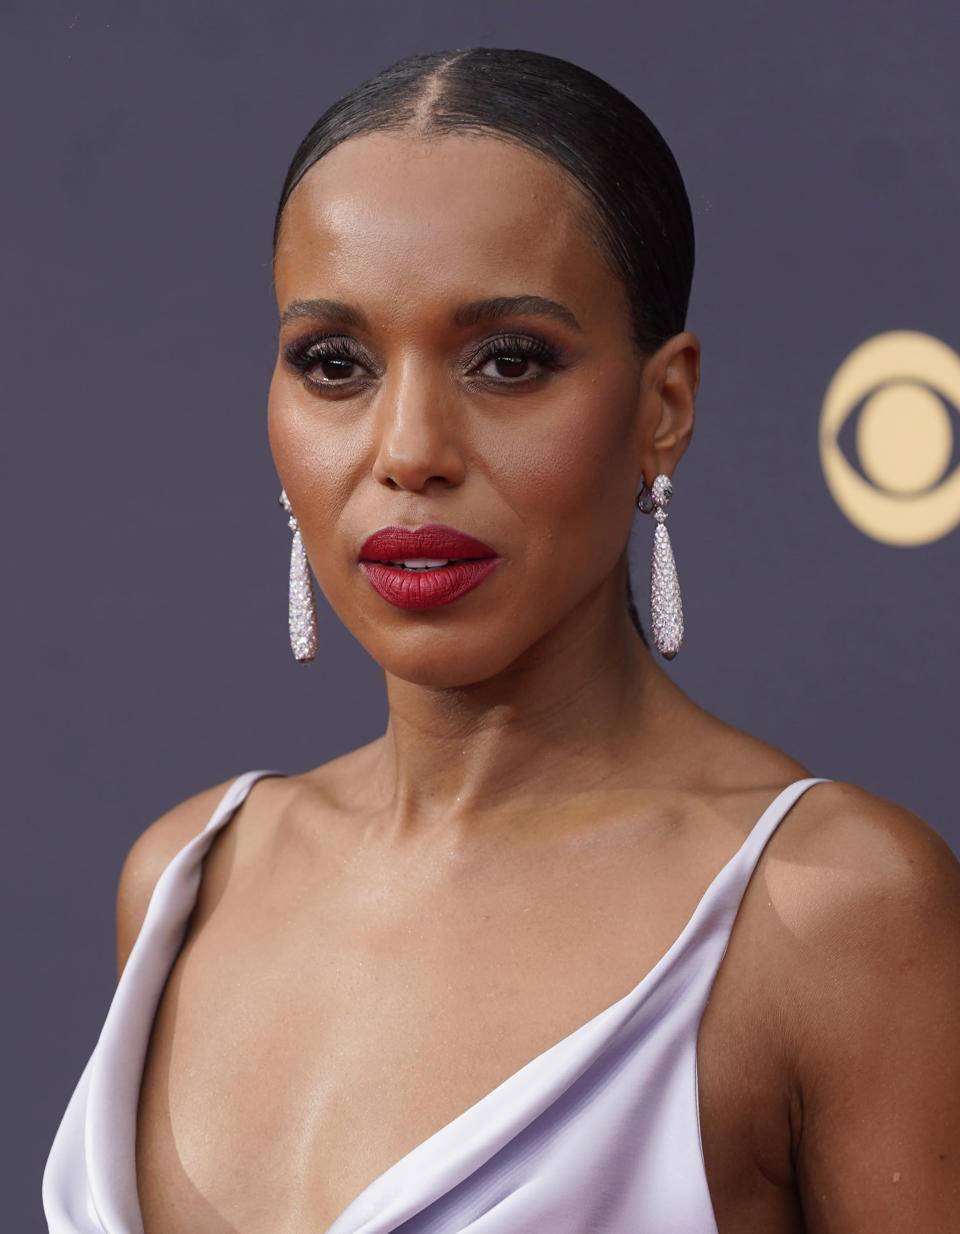 Kerry Washington arrives at the 73rd Primetime Emmy Awards. - Credit: Chris Pizzello/Invision/AP